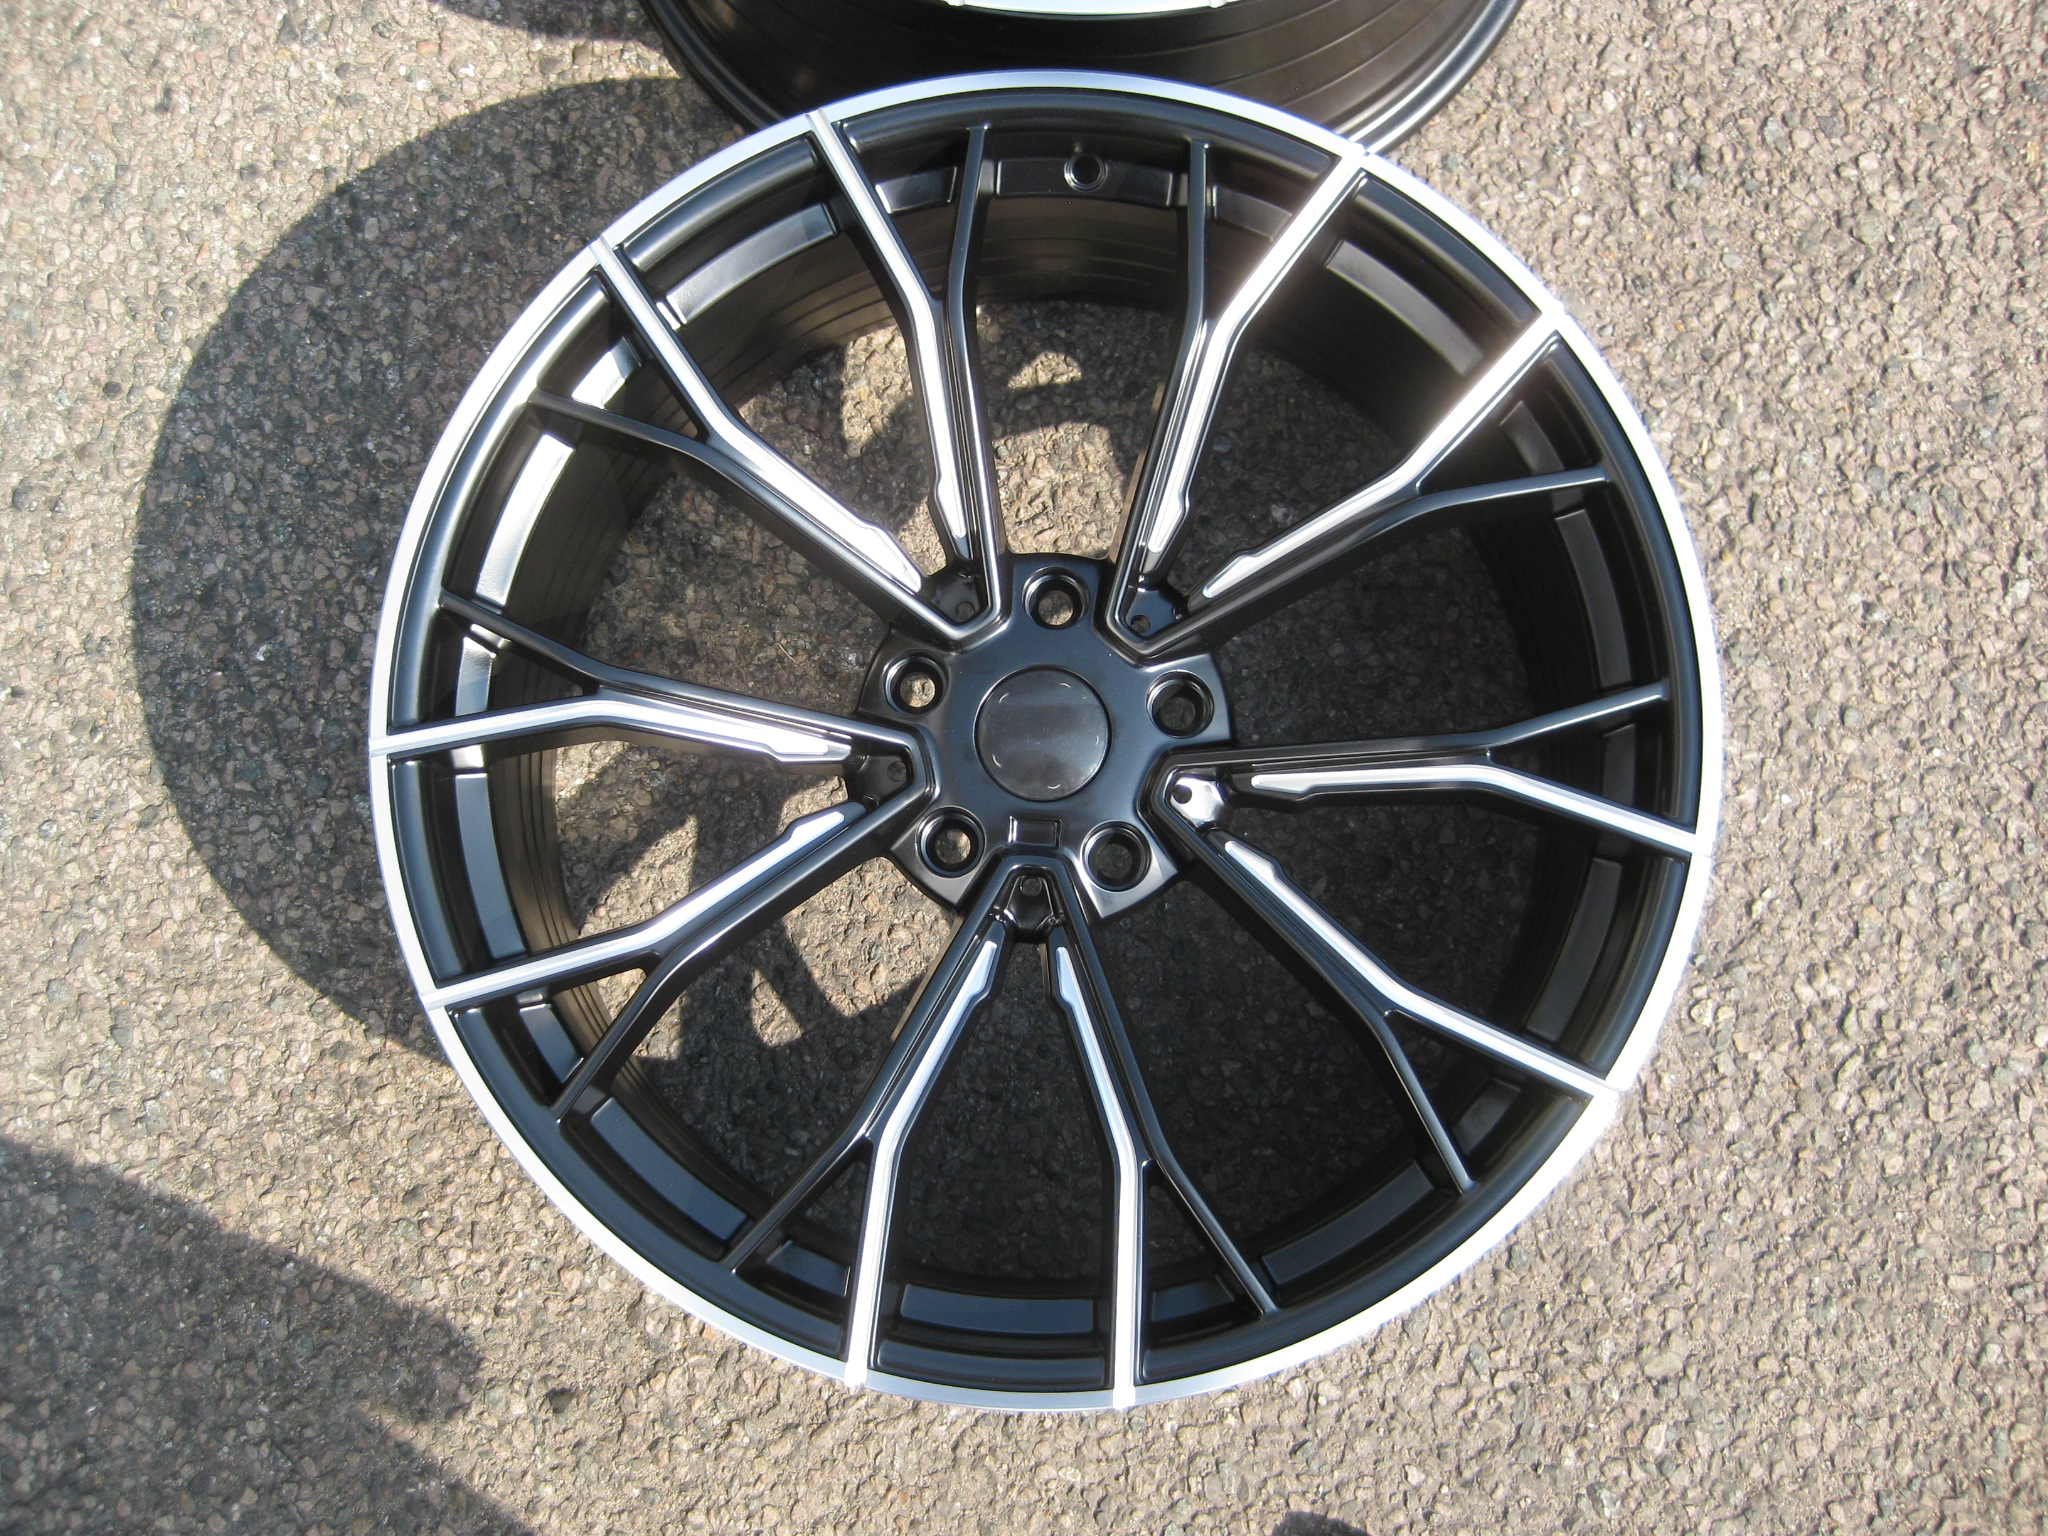 "NEW 20"" AG MG30P FLOW FORMED ALLOYS IN SATIN BLACK WITH MILLED SPOKES, DEEPER CONCAVE 10.5"" REAR"